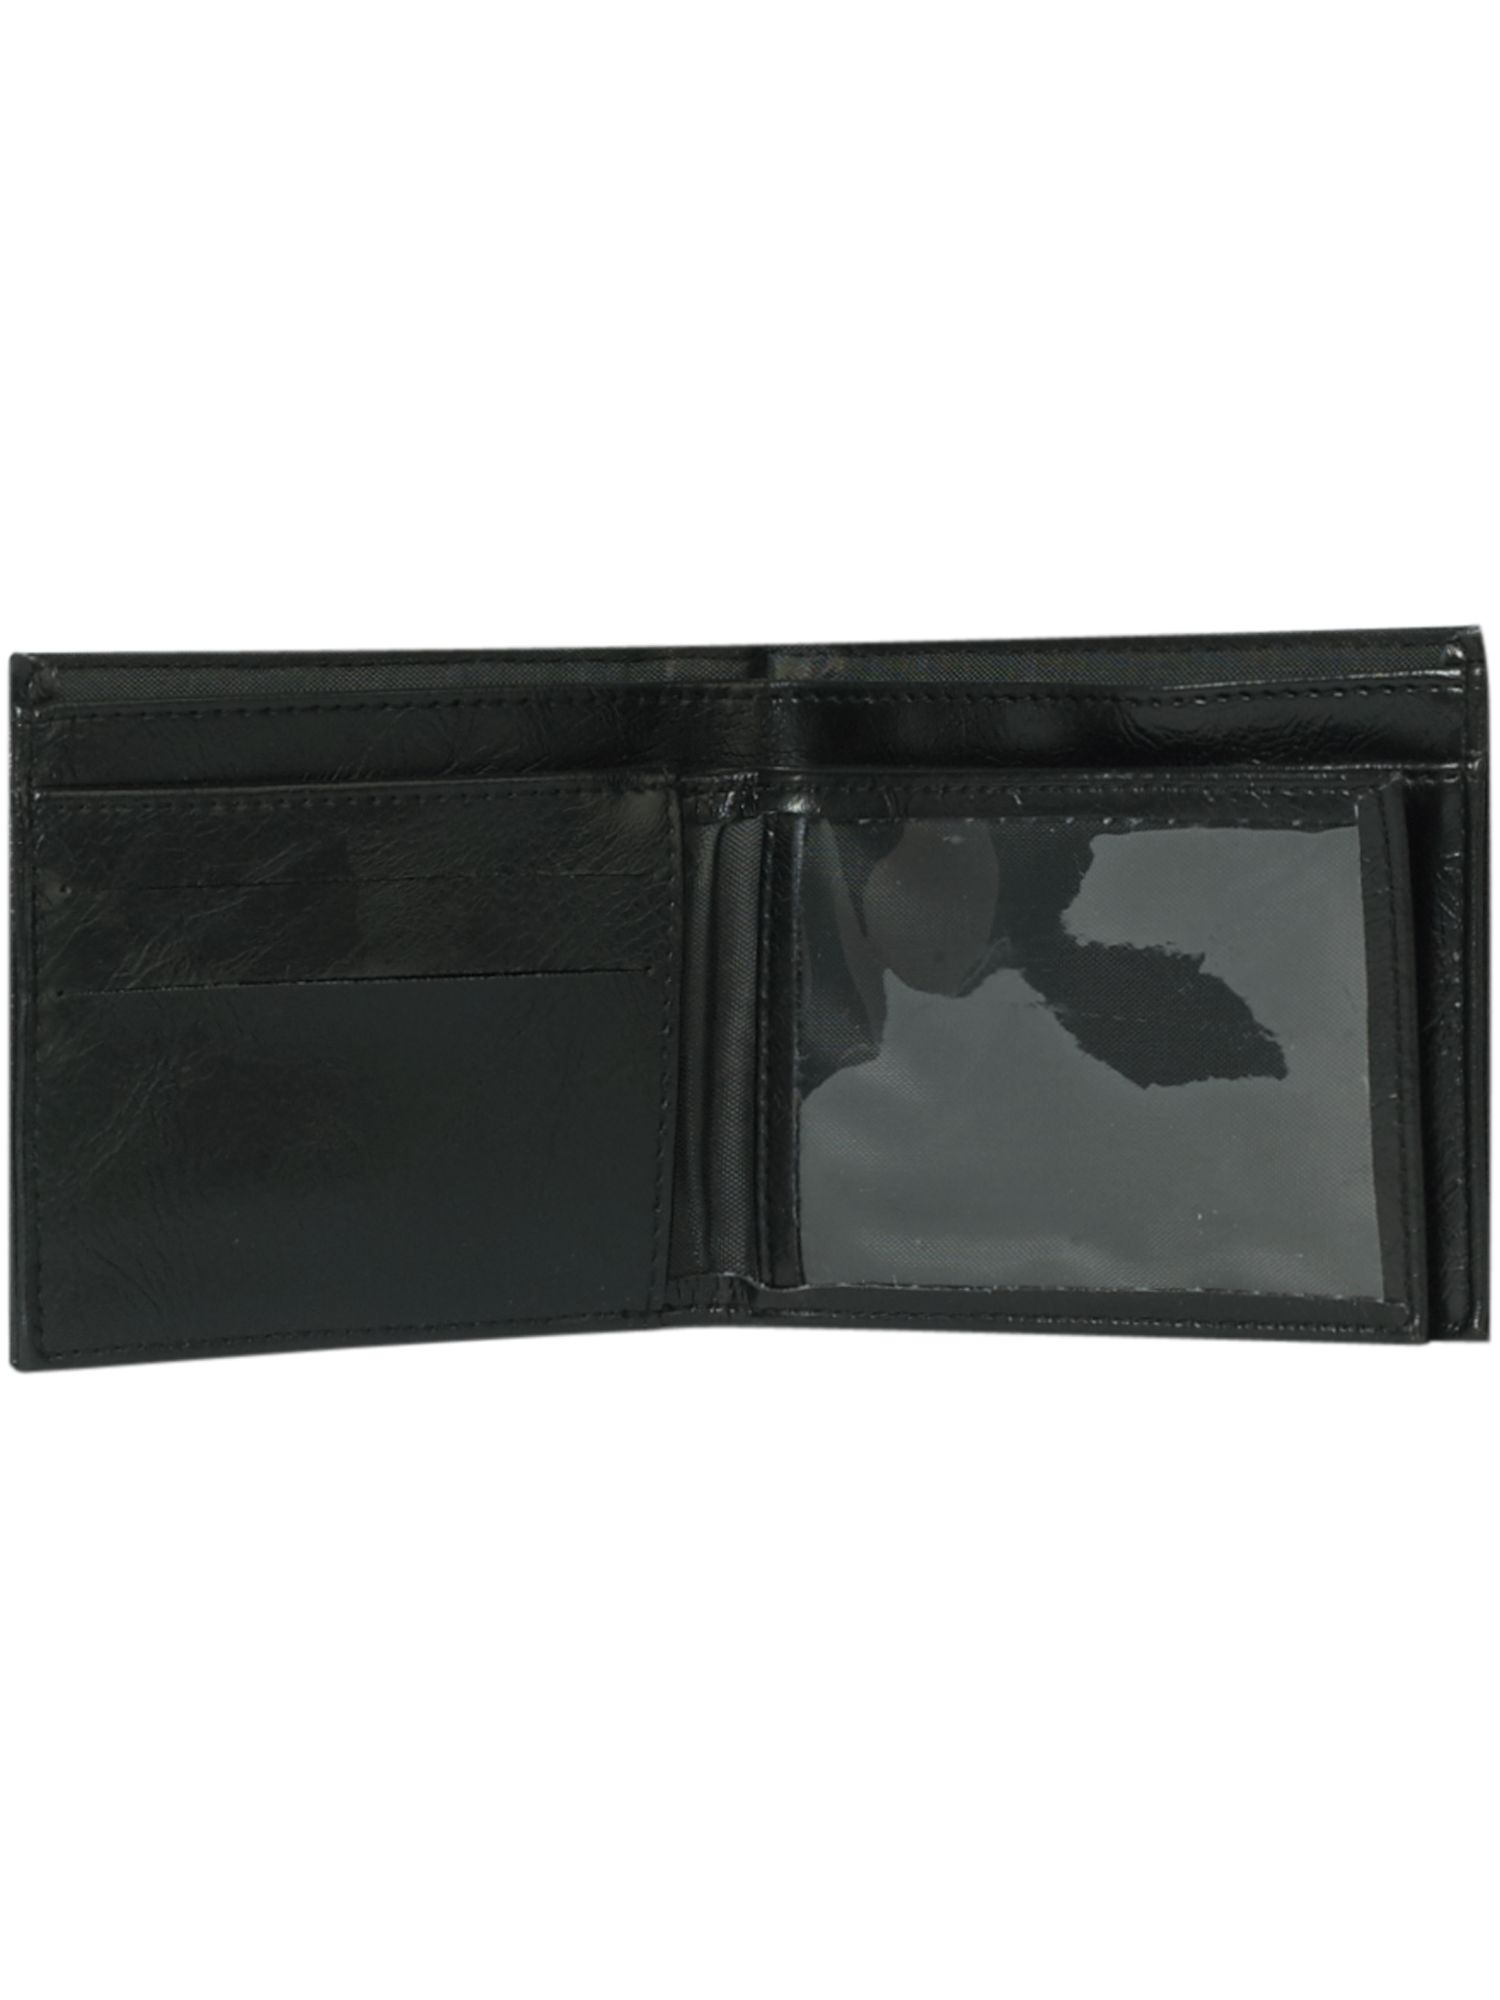 Billfold and coin pouch wallet